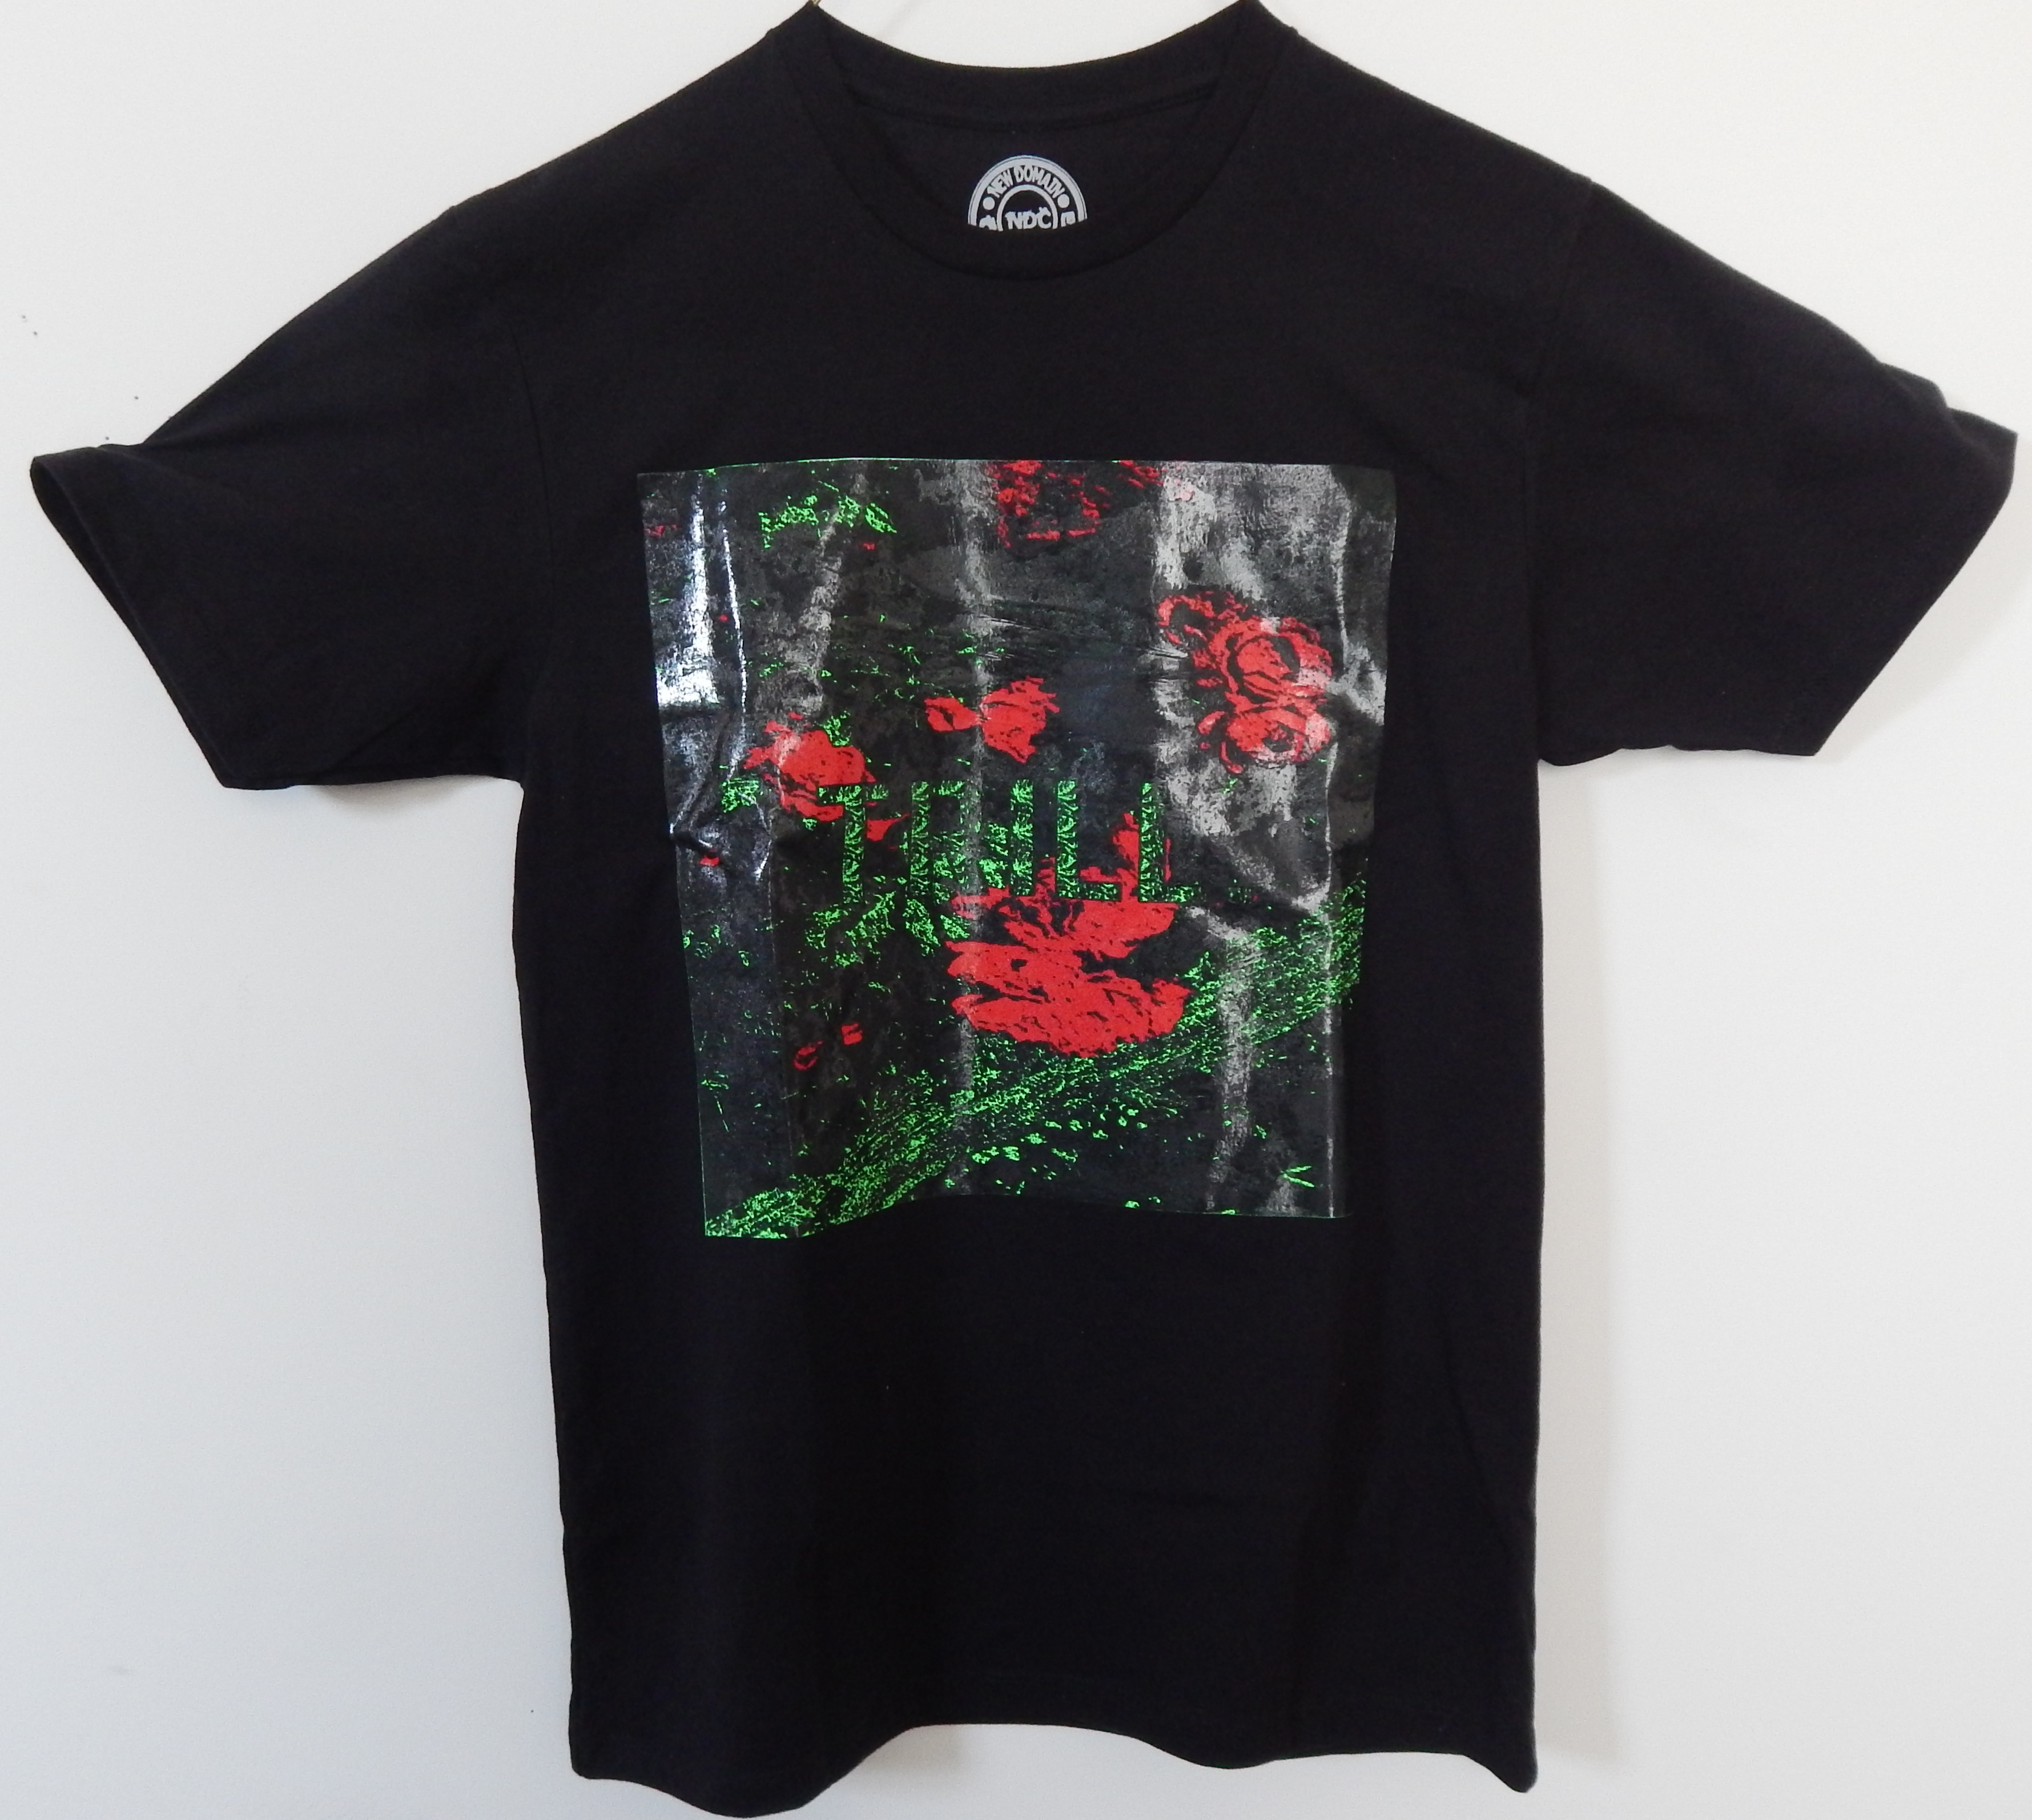 Black - Trill / New Domain Clothing